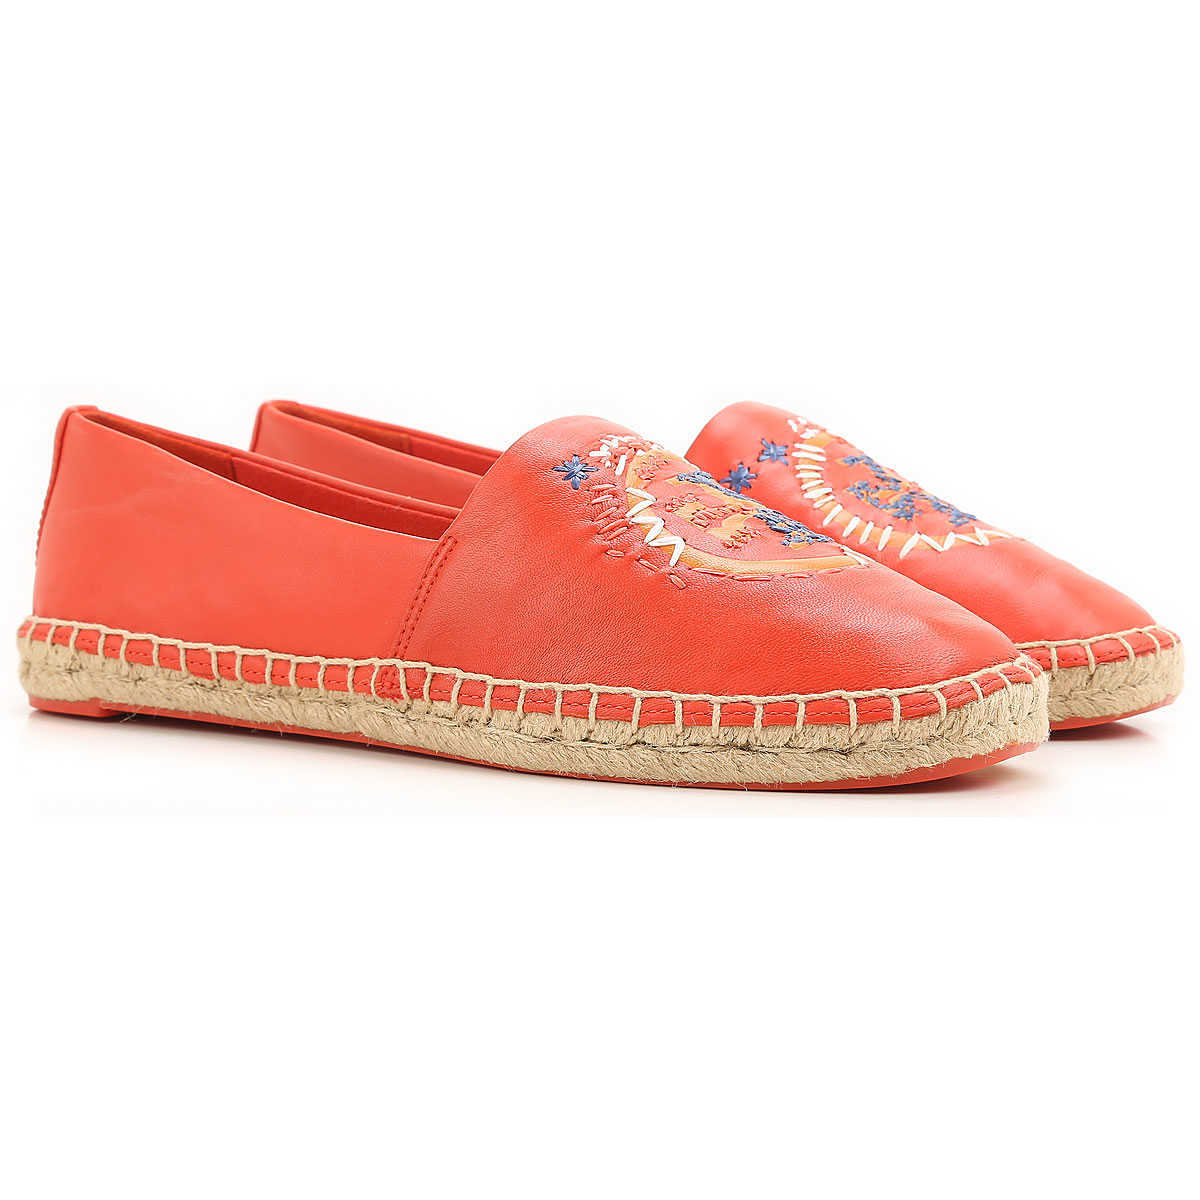 Tory Burch Sandals for Women On Sale in Outlet Orange DK - GOOFASH - Womens SANDALS